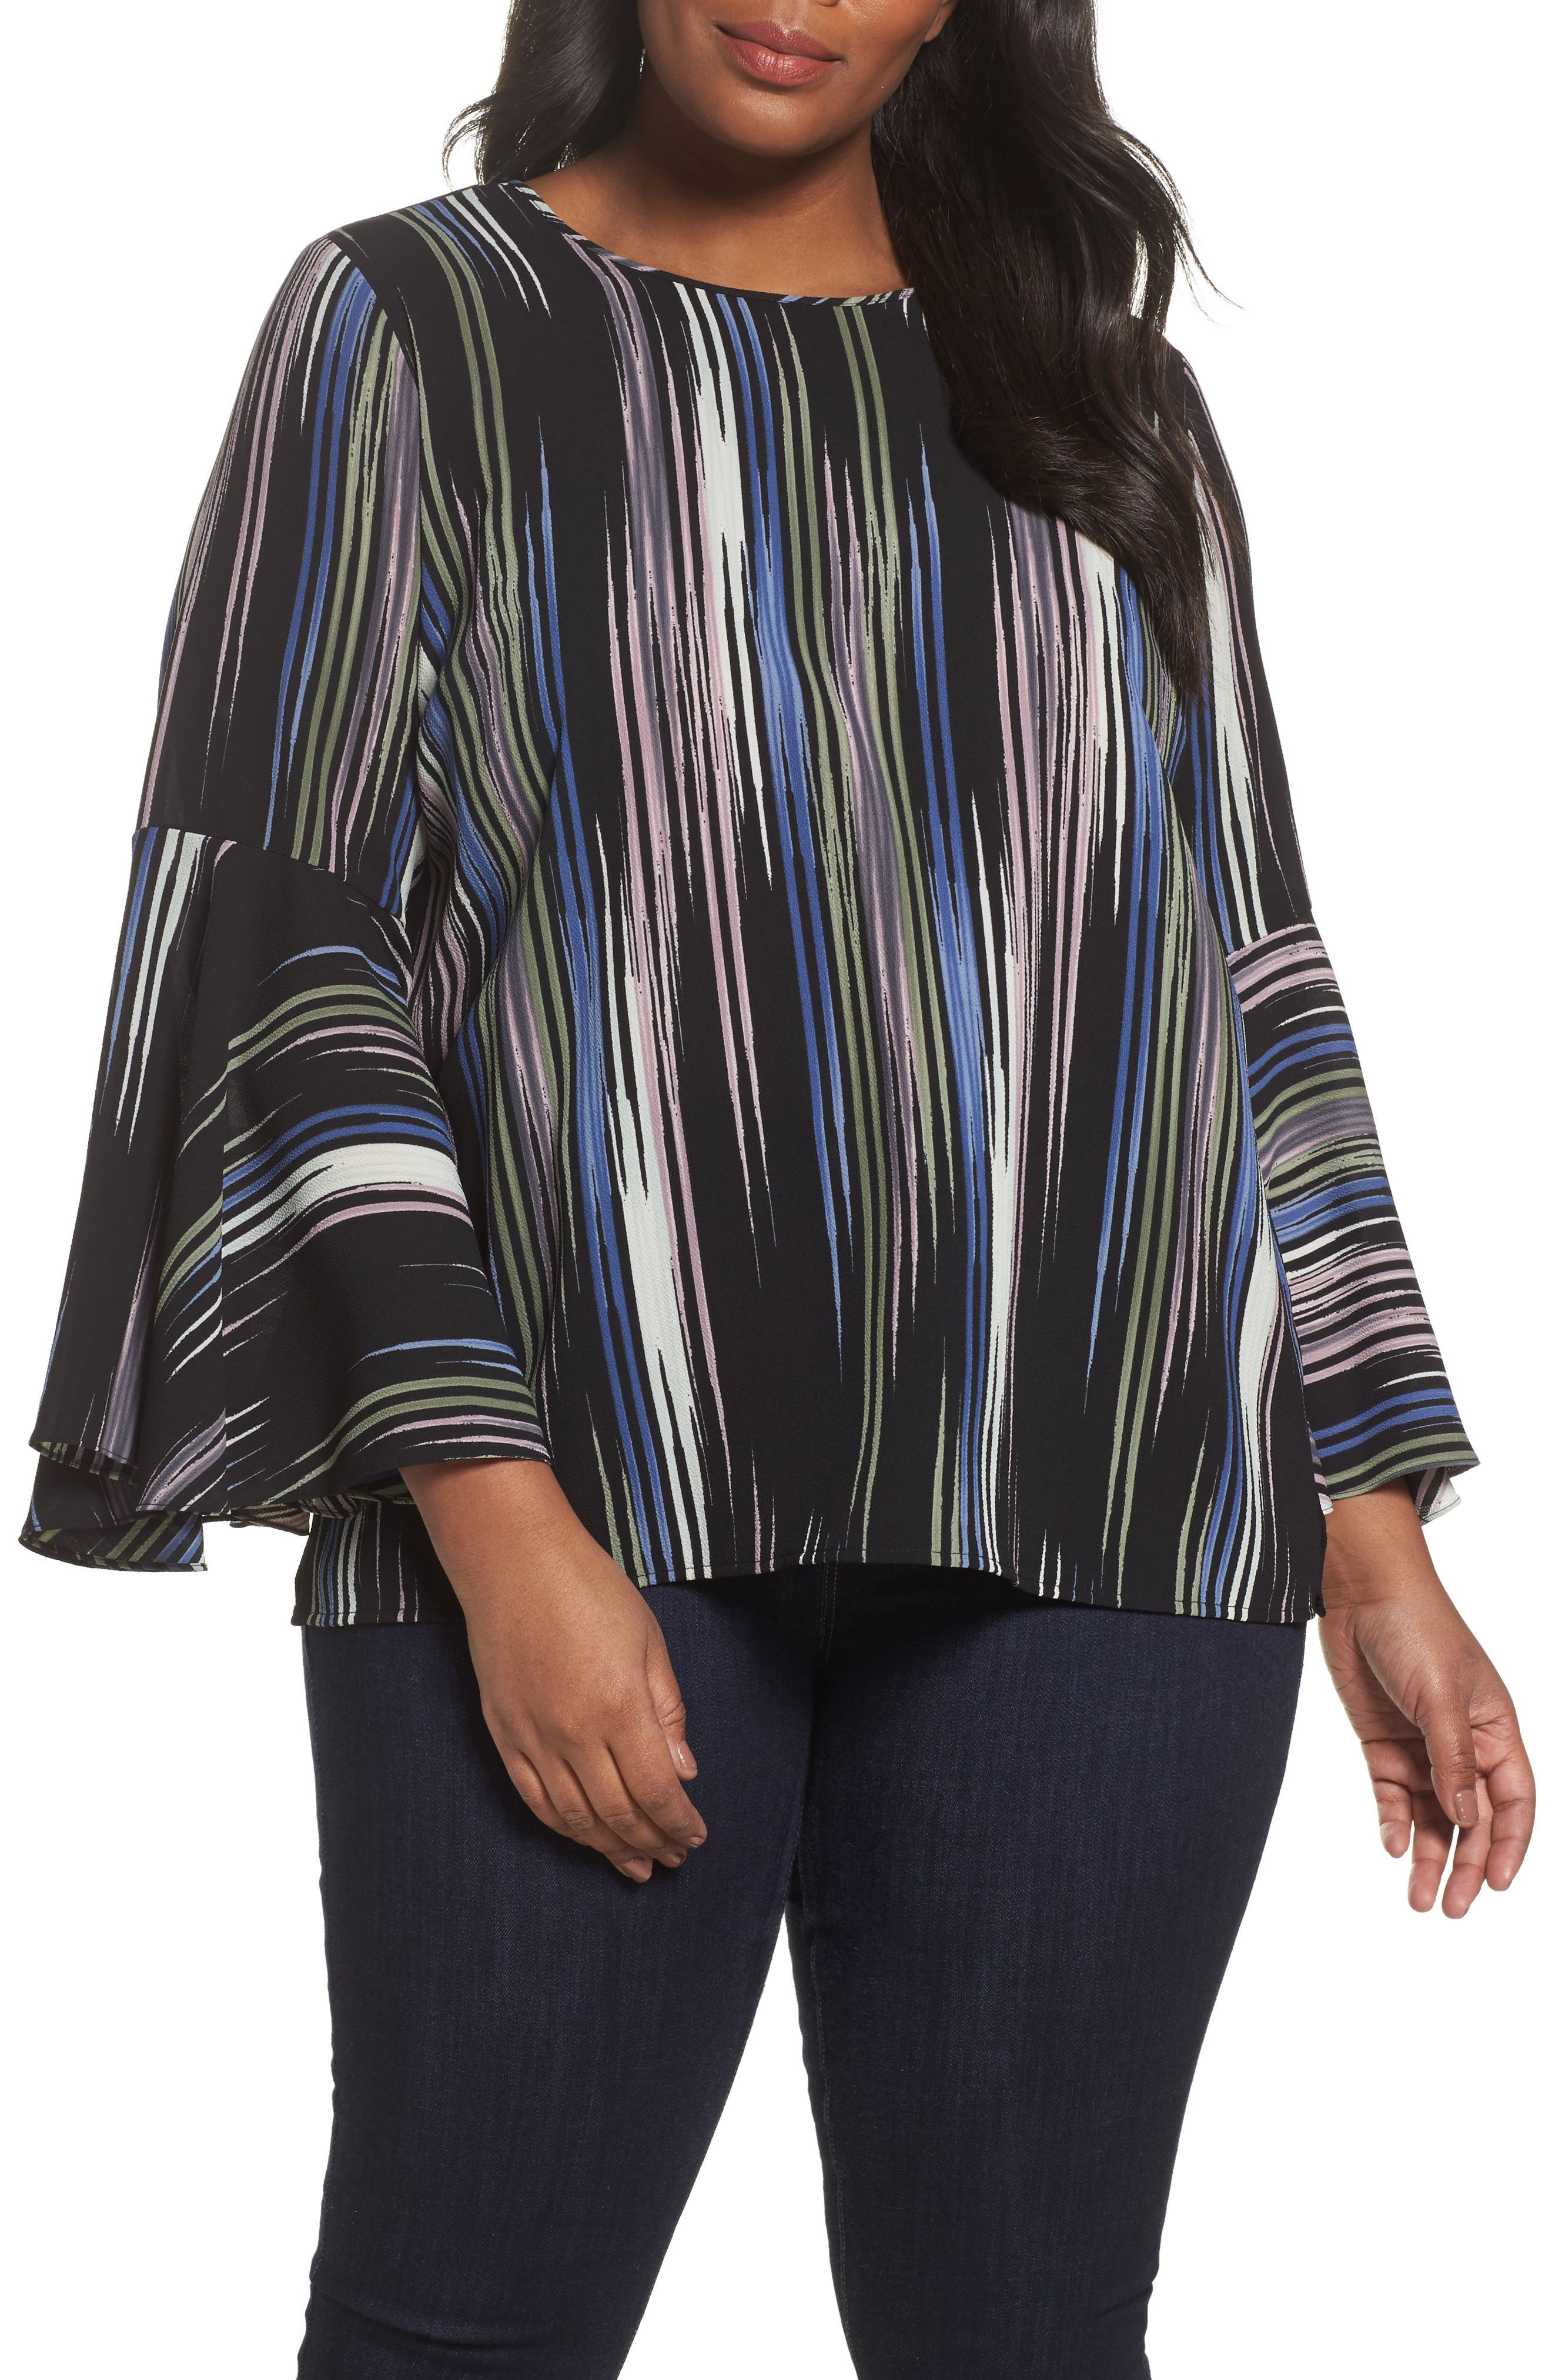 Alternate Image 1 Selected - Vince Camuto Bell Sleeve Colorful Peak Blouse (Plus Size)